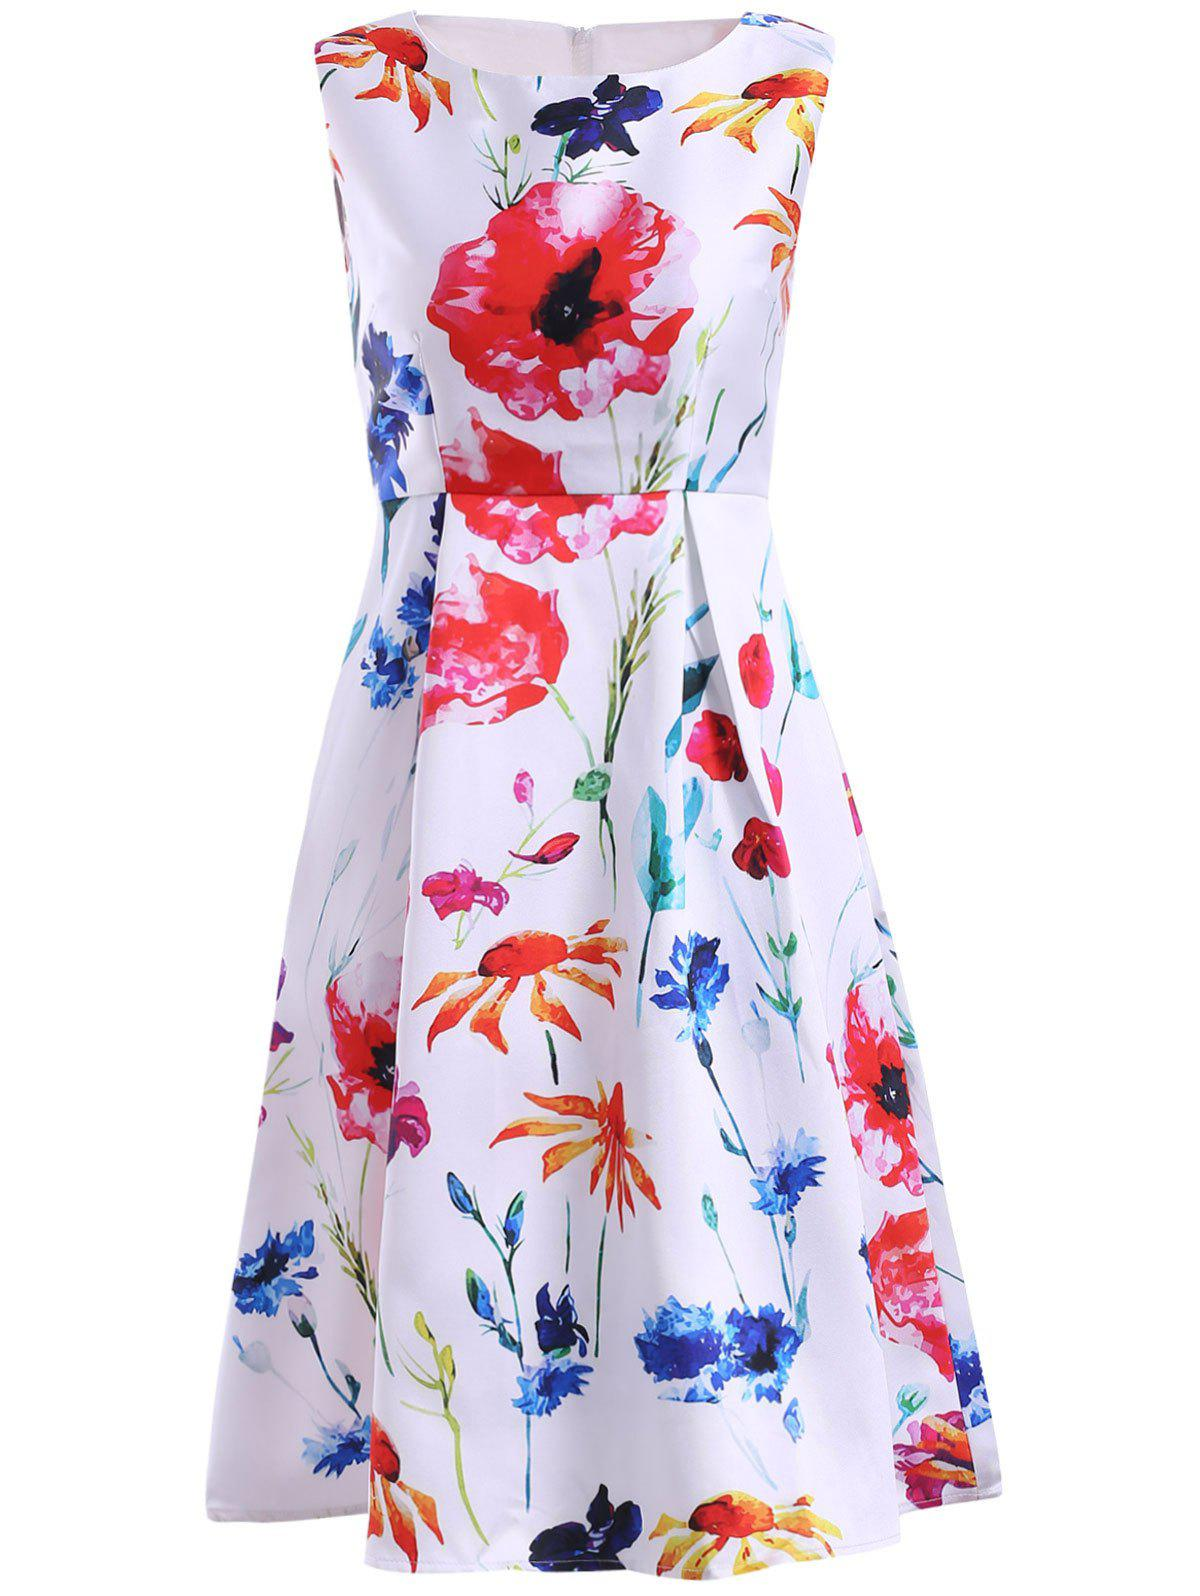 Simple Style Jewel Neck Sleeveless Floral Print Dress For Women - WHITE XL